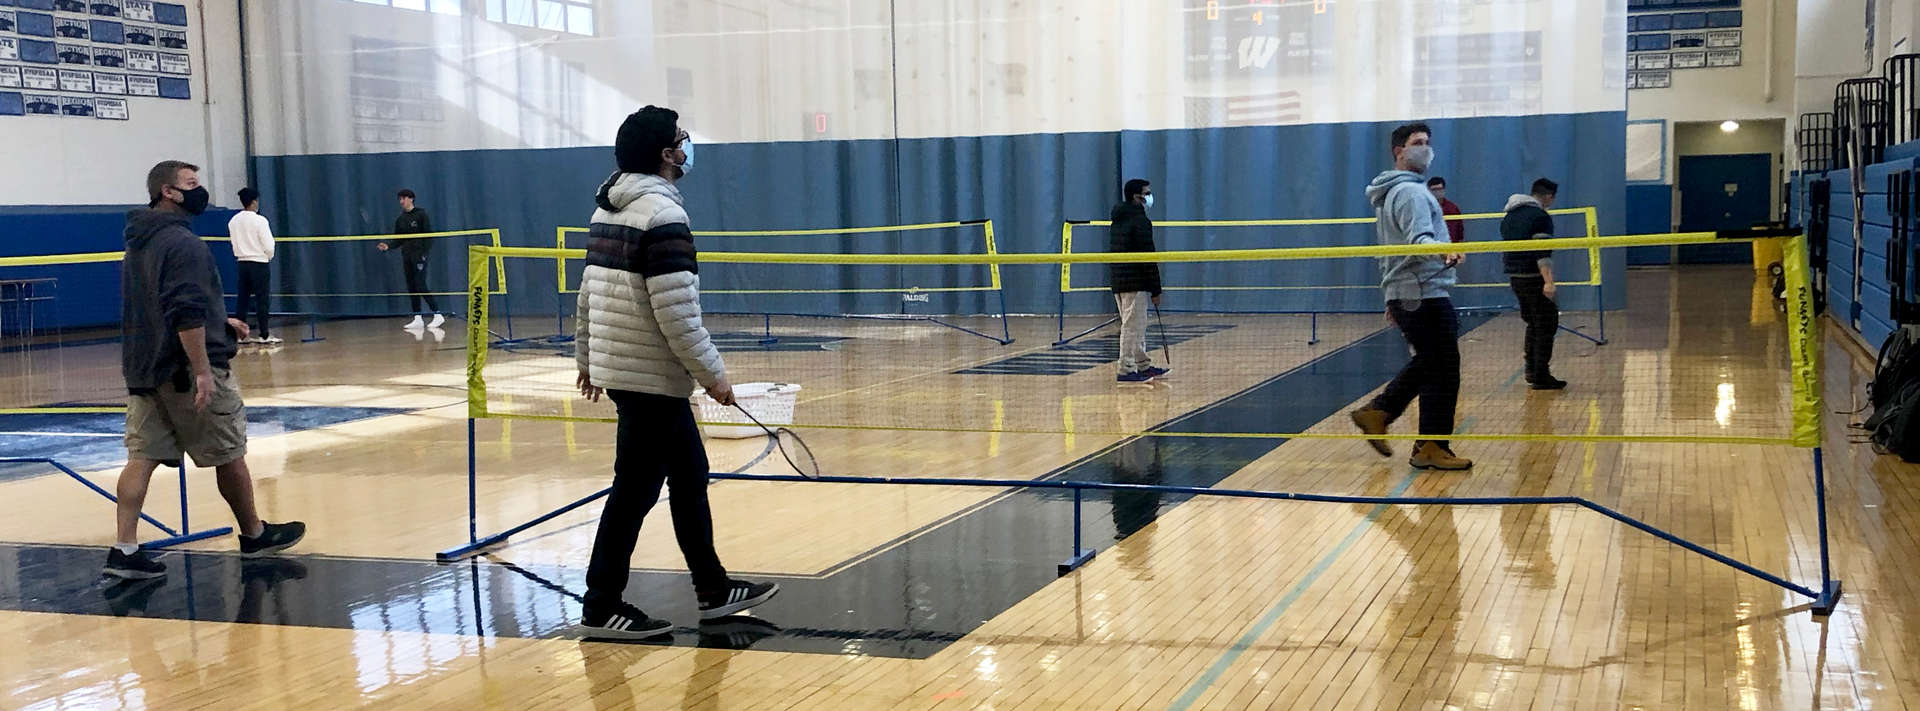 high school students play badminton during PE class